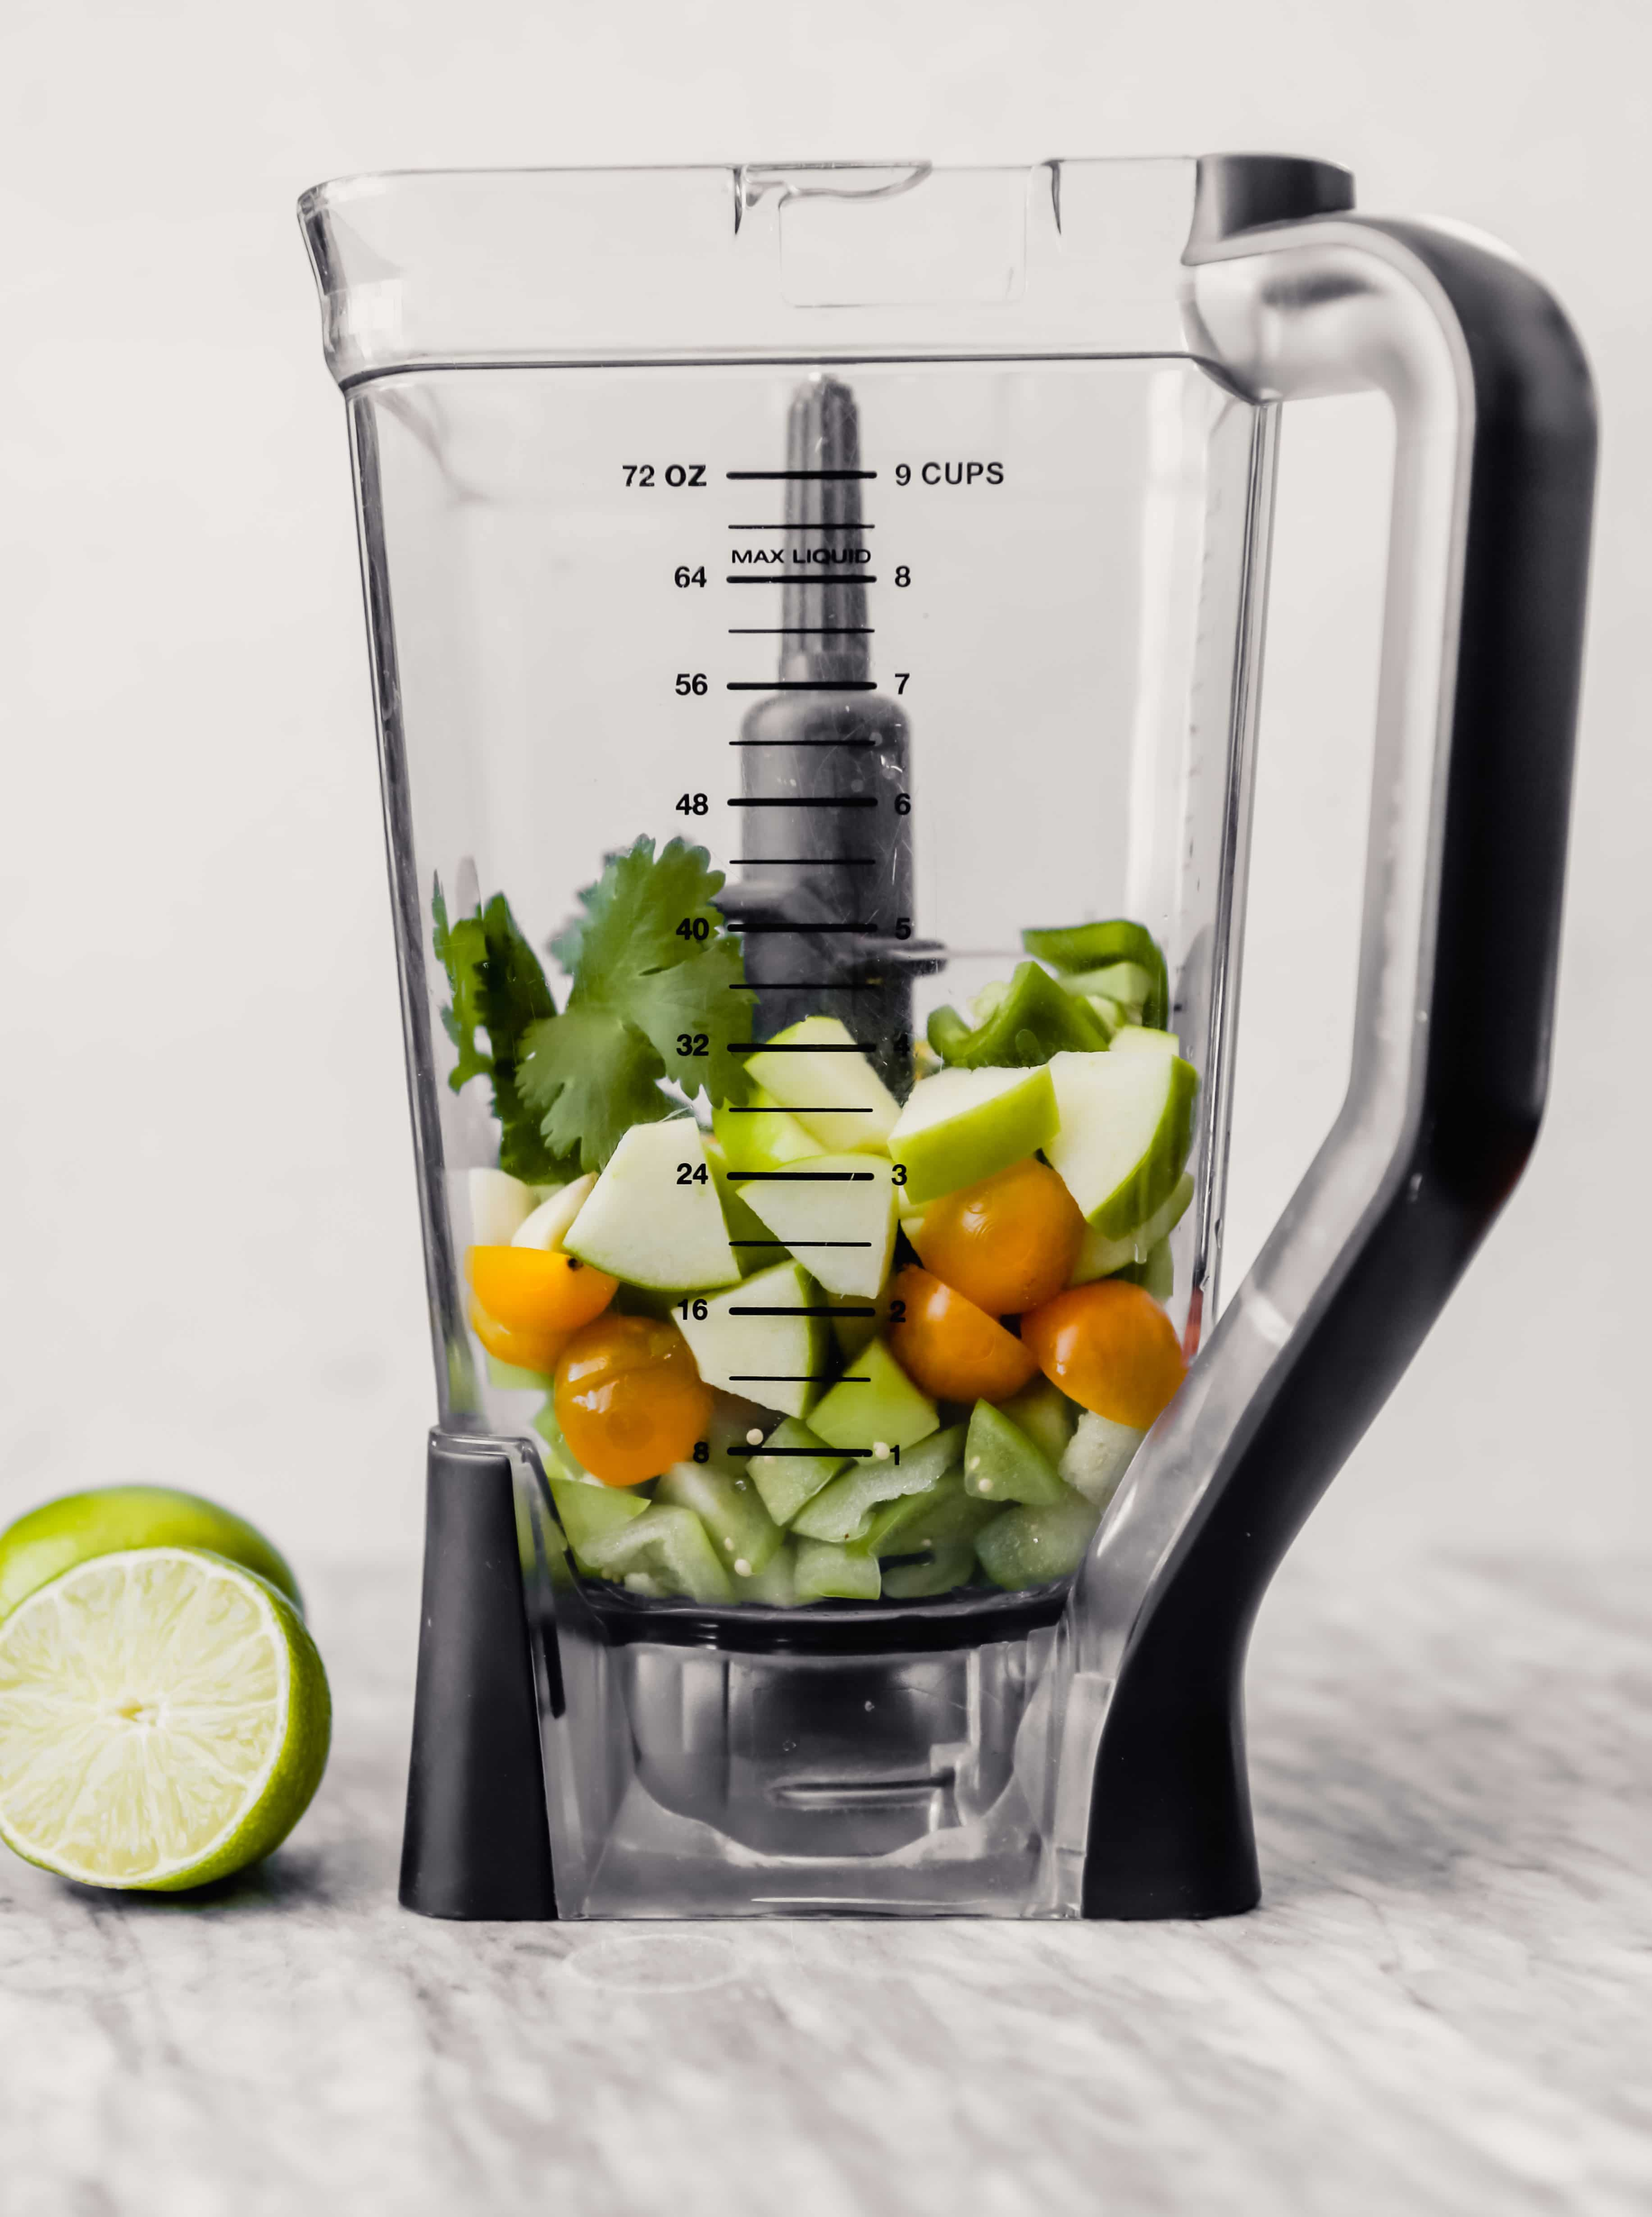 Tomatillos, cherry tomatoes, apple, and herbs in a blender